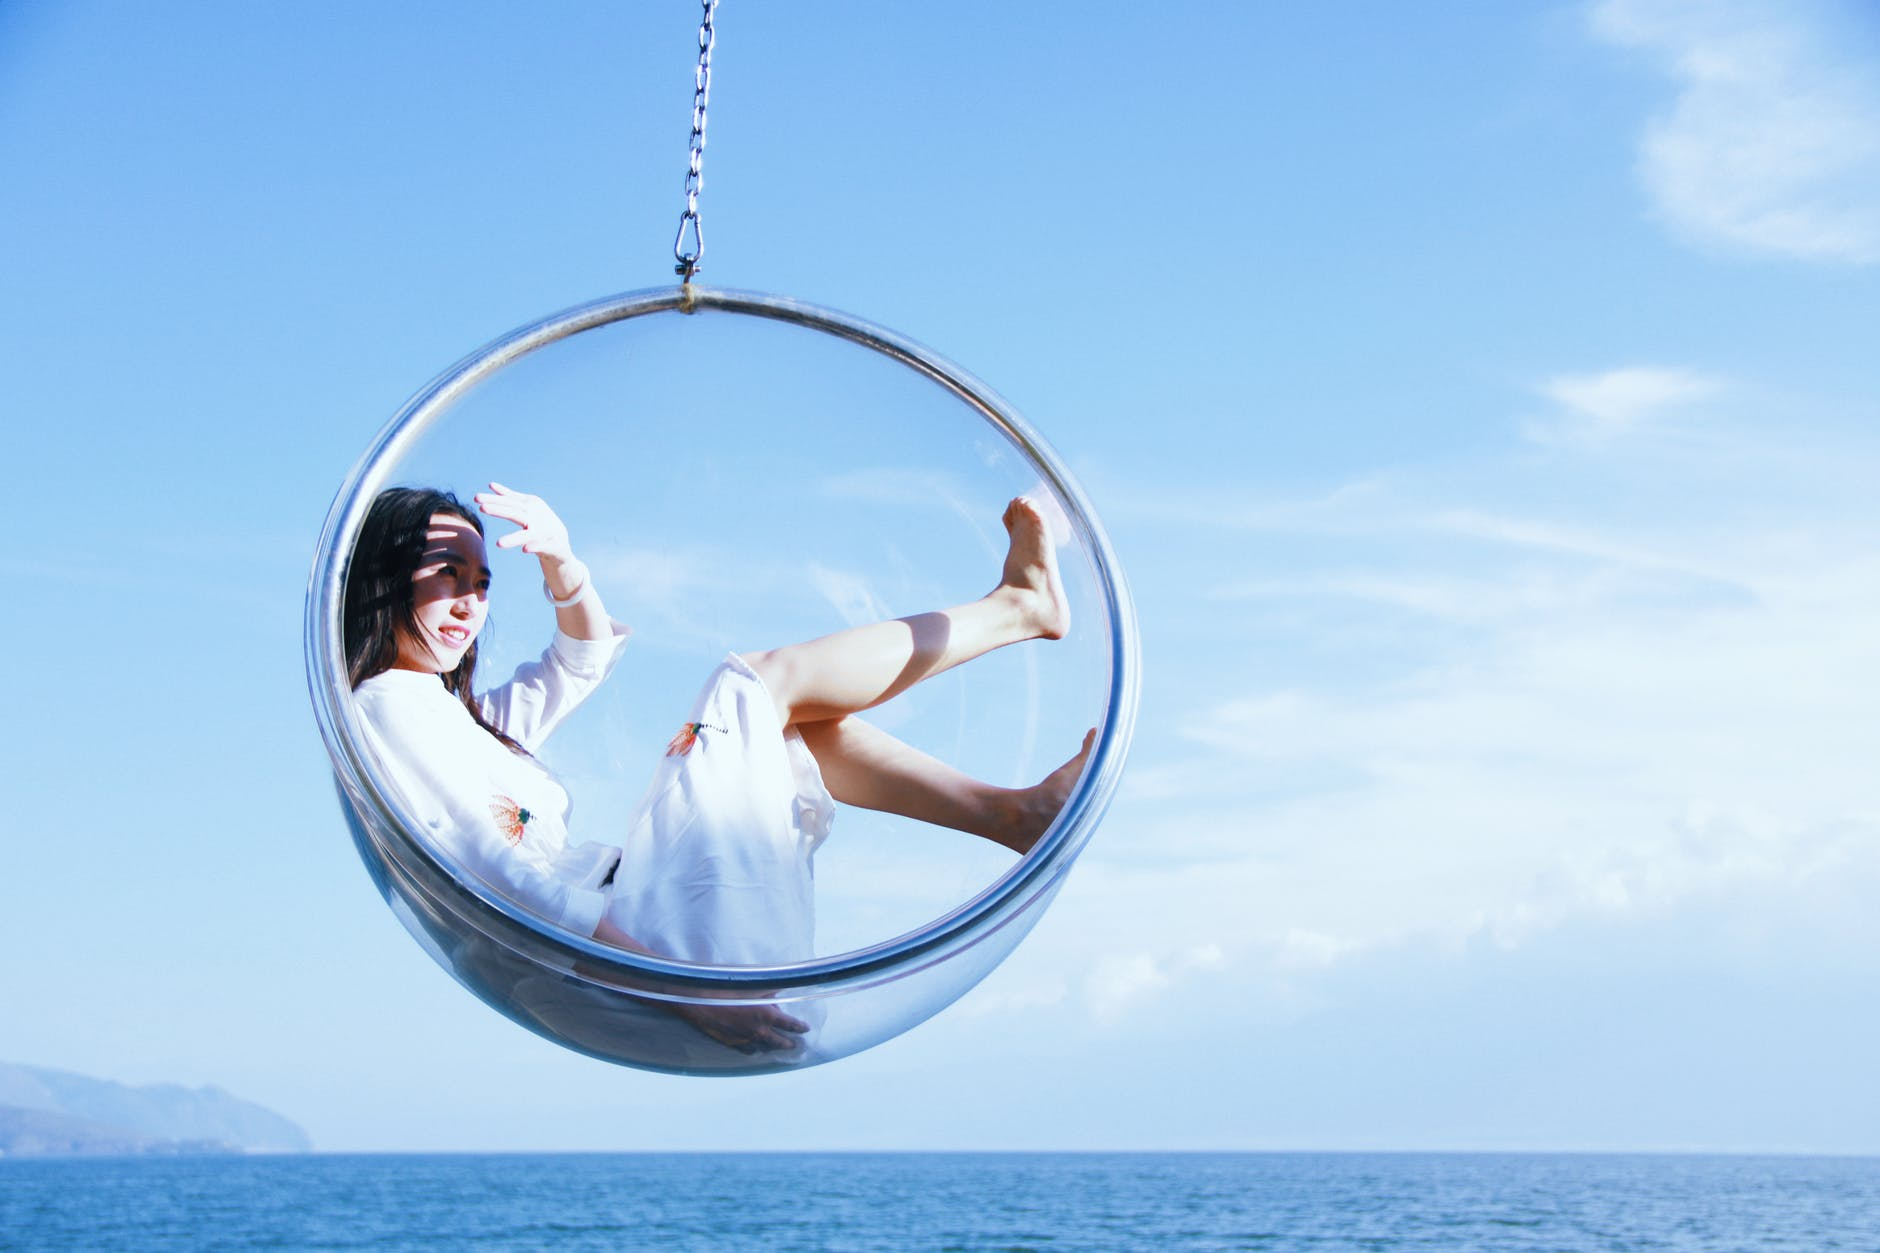 A young woman in a swinging seat hanging over the sea